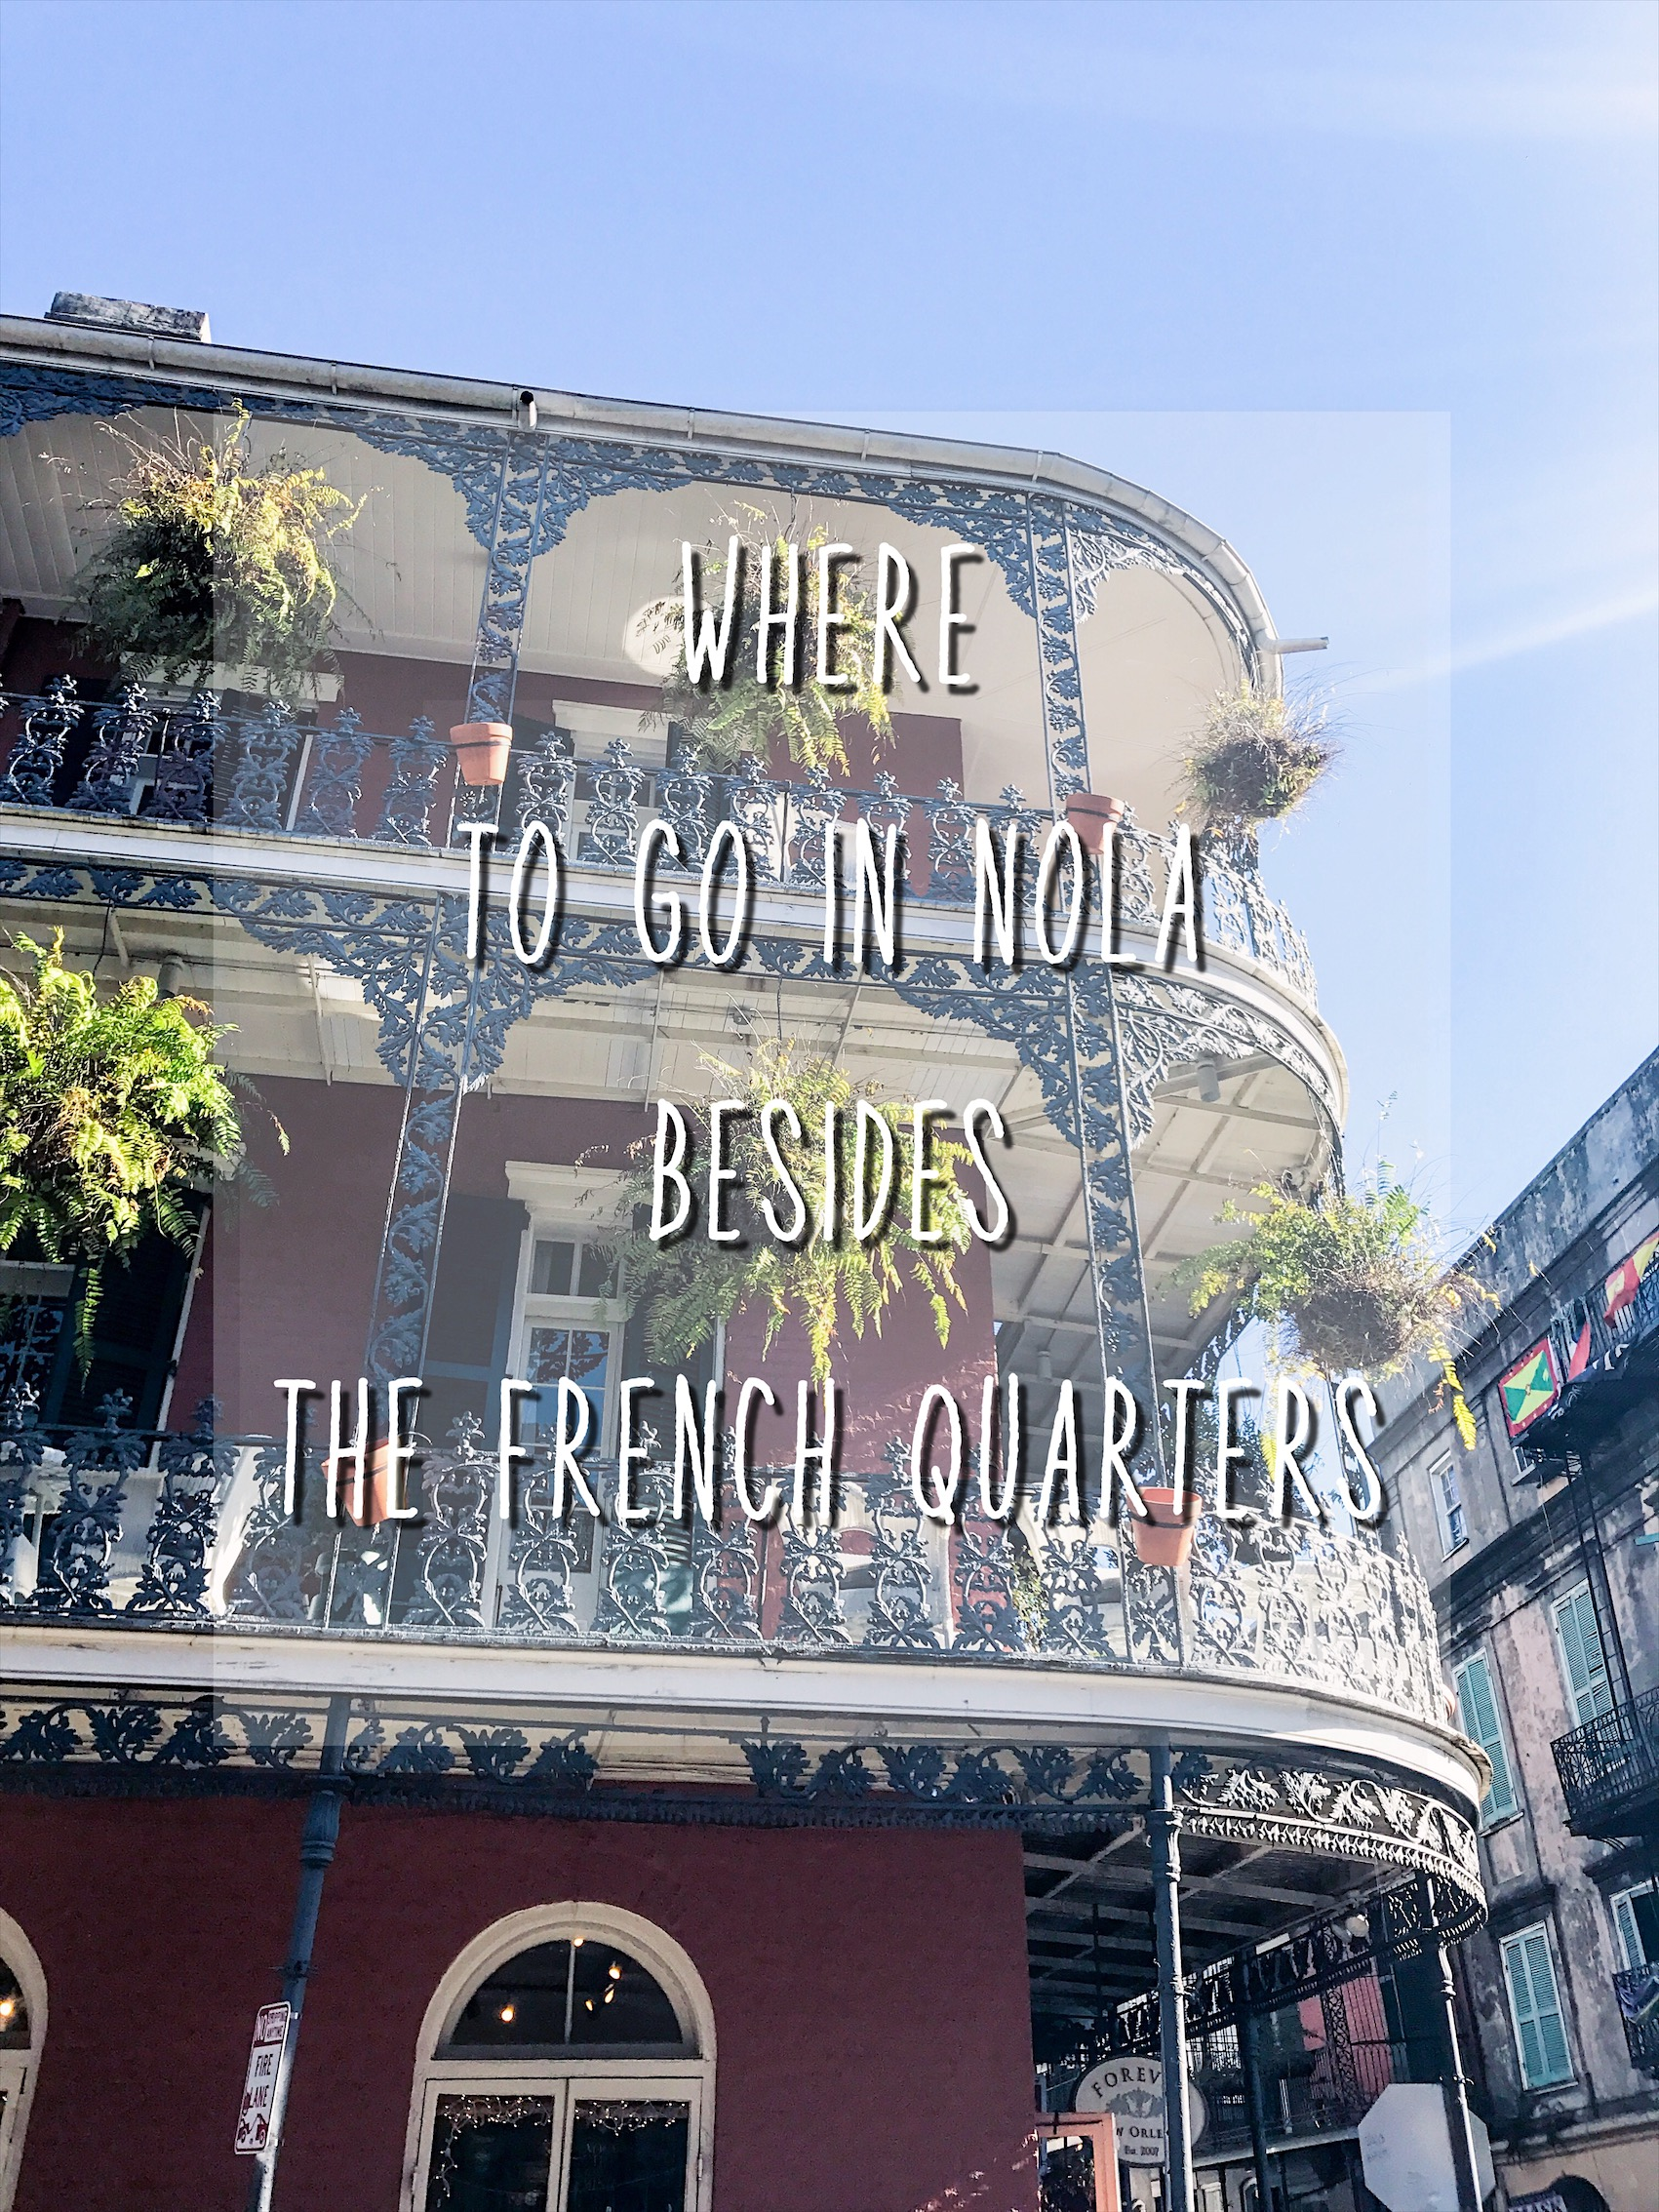 For cool spots other than the French Quarters